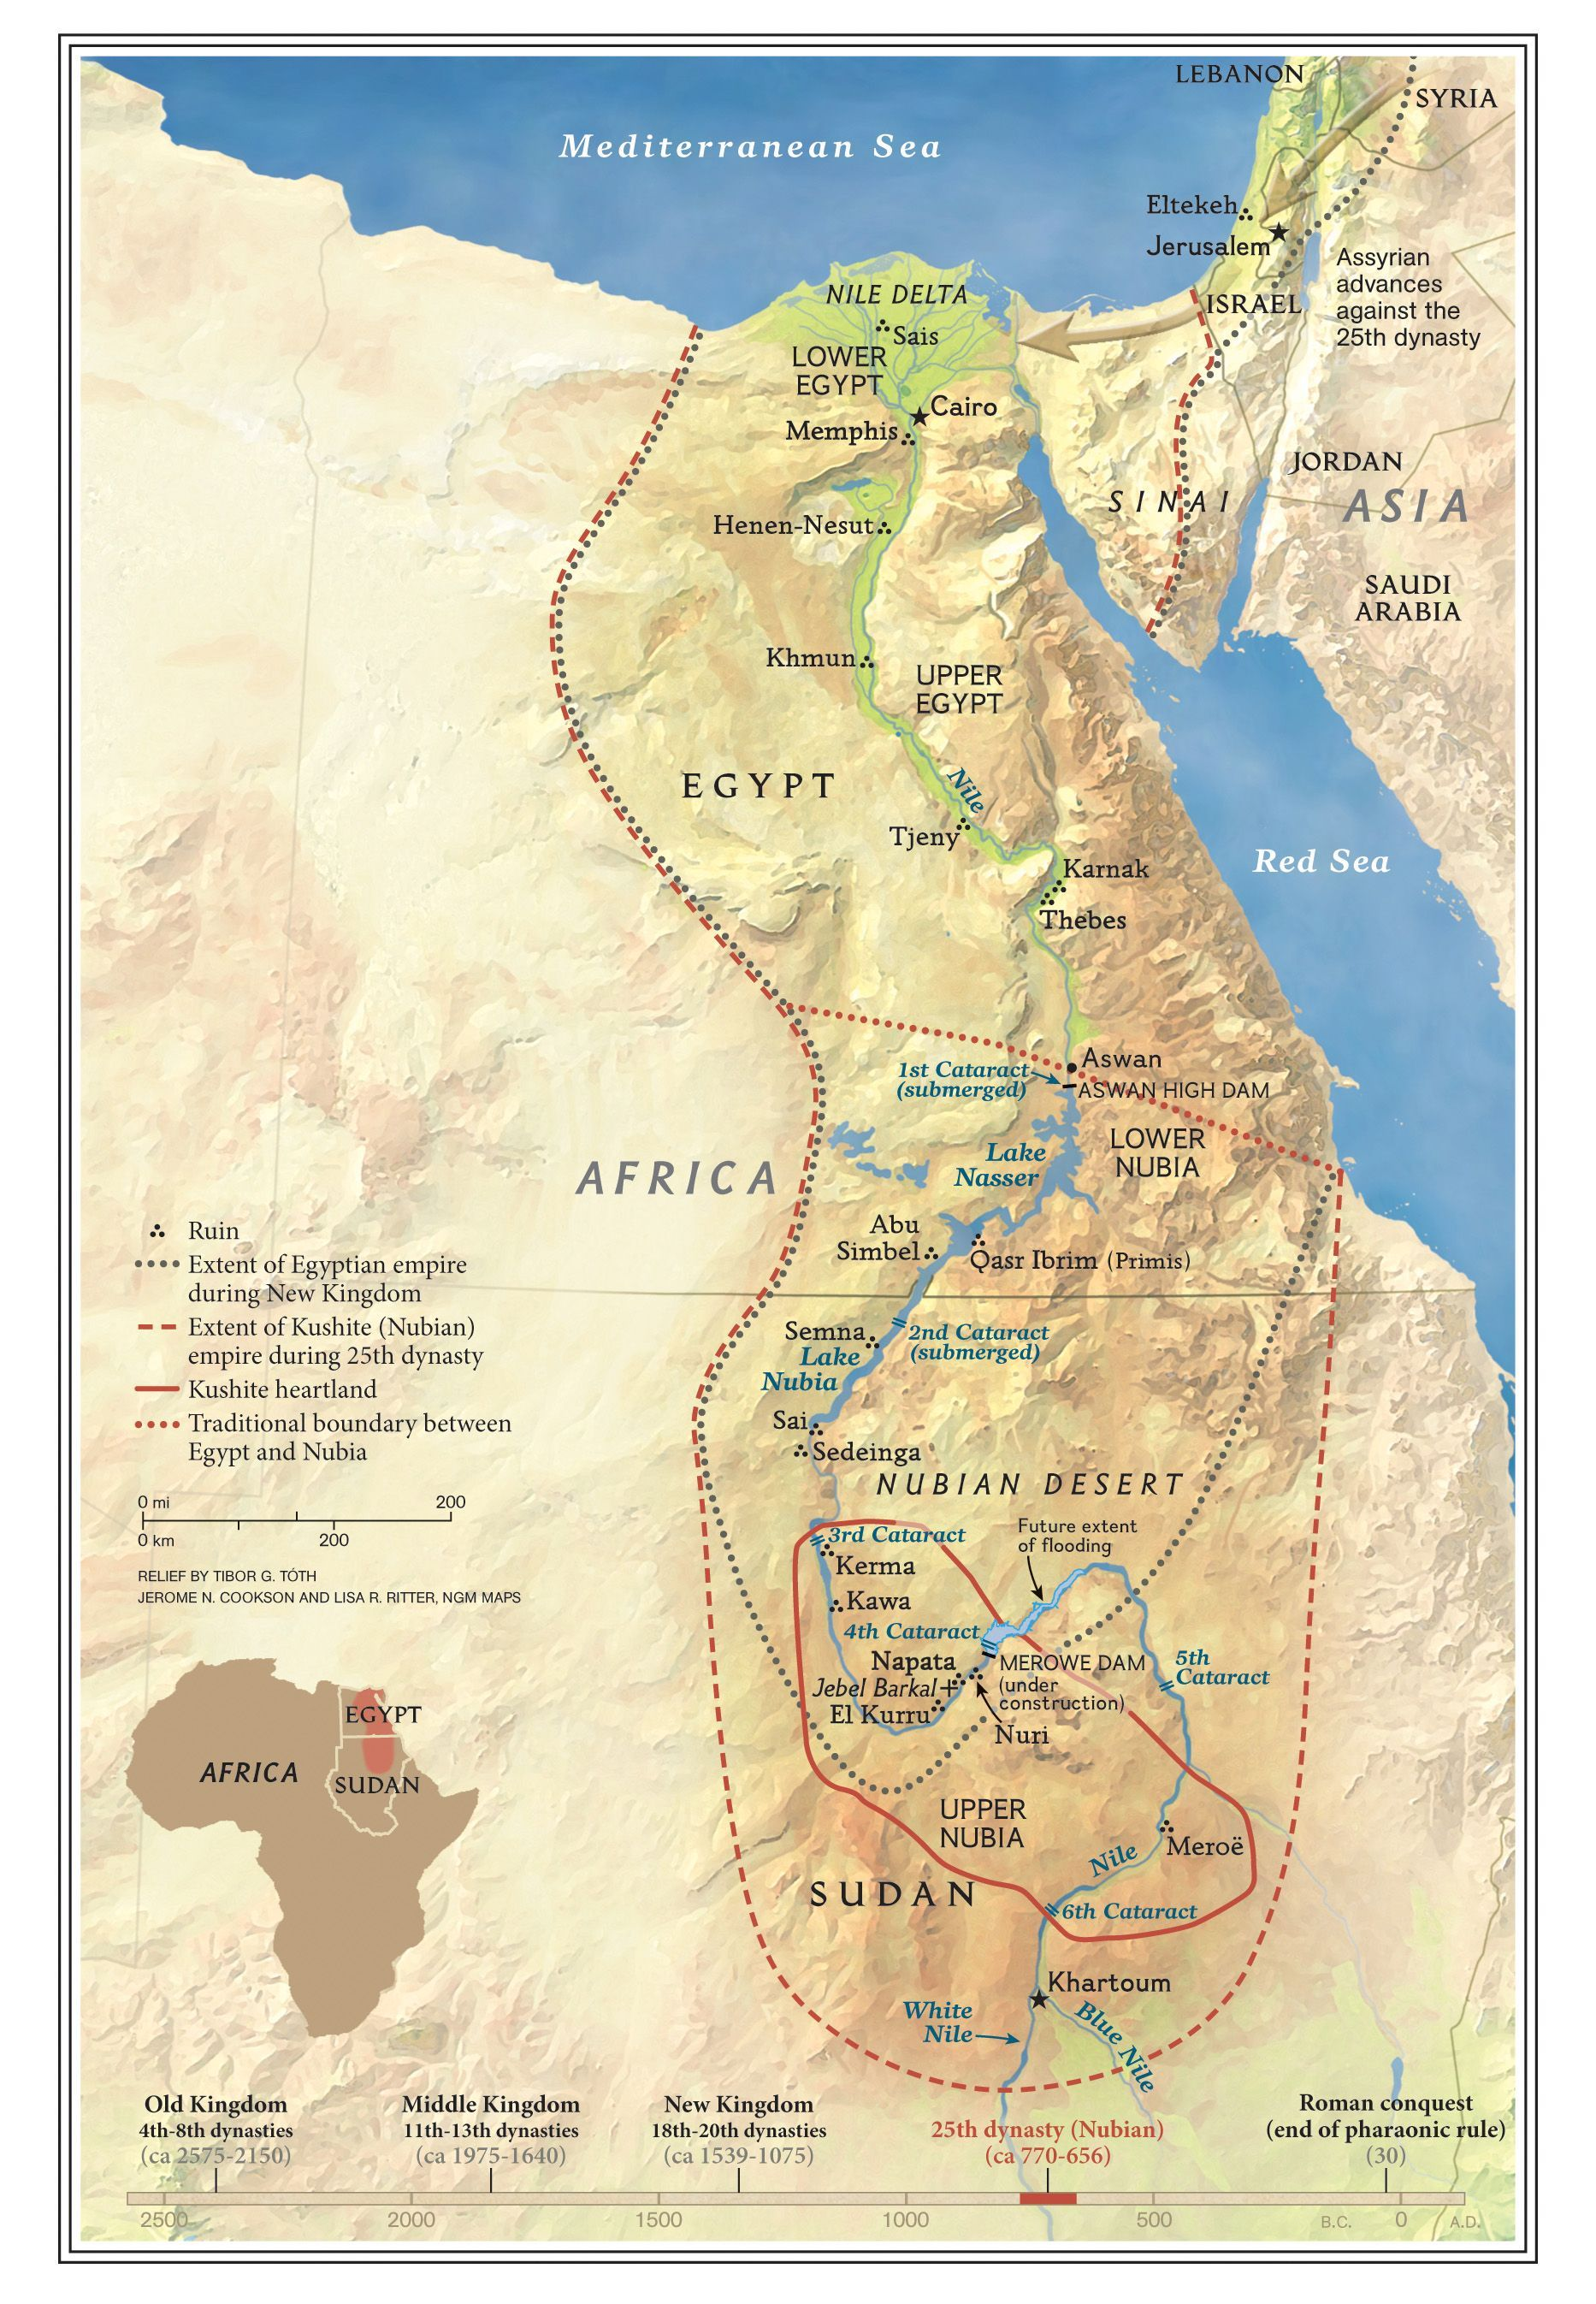 The Kingdoms of Kush | National Geographic Society on geographical map of africa, current map of africa, blank map of africa, map of the founding of rome, map of africa with countries, climate map of africa, map of medieval africa, map of identity, map of contemporary africa, big map of africa, map of north america, map of cush, map of italian africa, map of norway africa, map of mesopotamia, map of china, map of middle east, map of east africa, map of earth africa, map of historical africa,